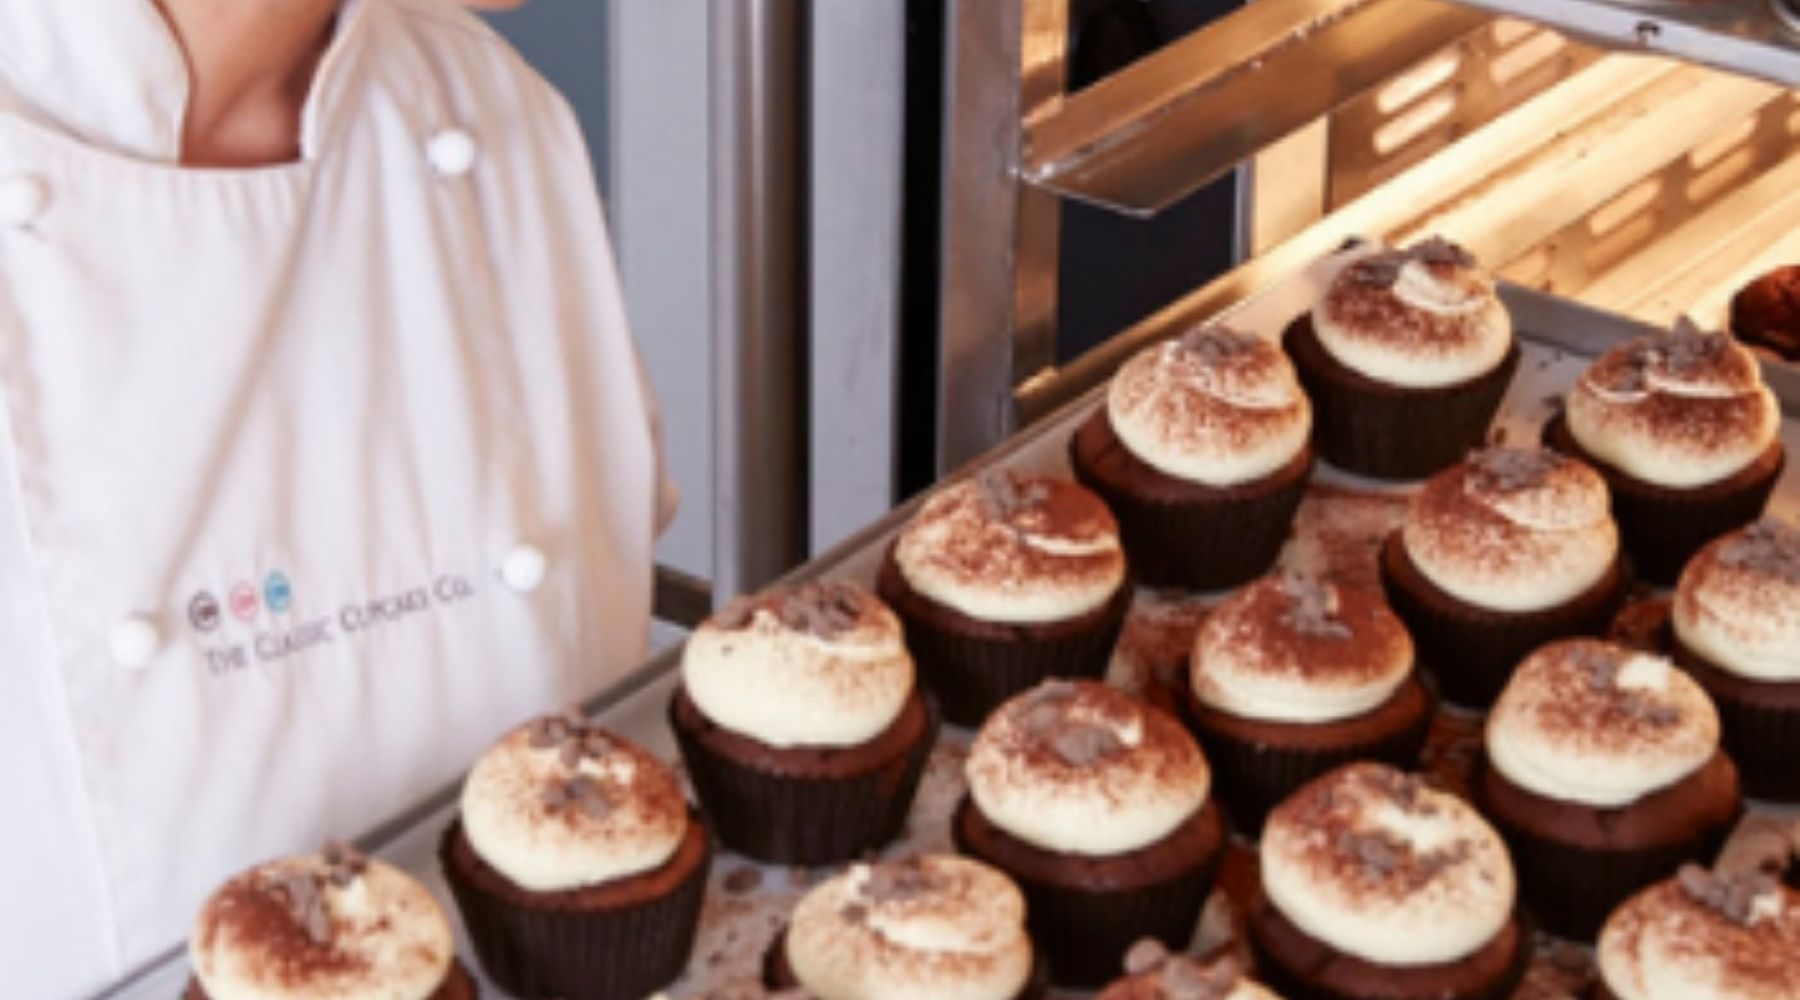 A tray of cupcakes being taken out of the oven.